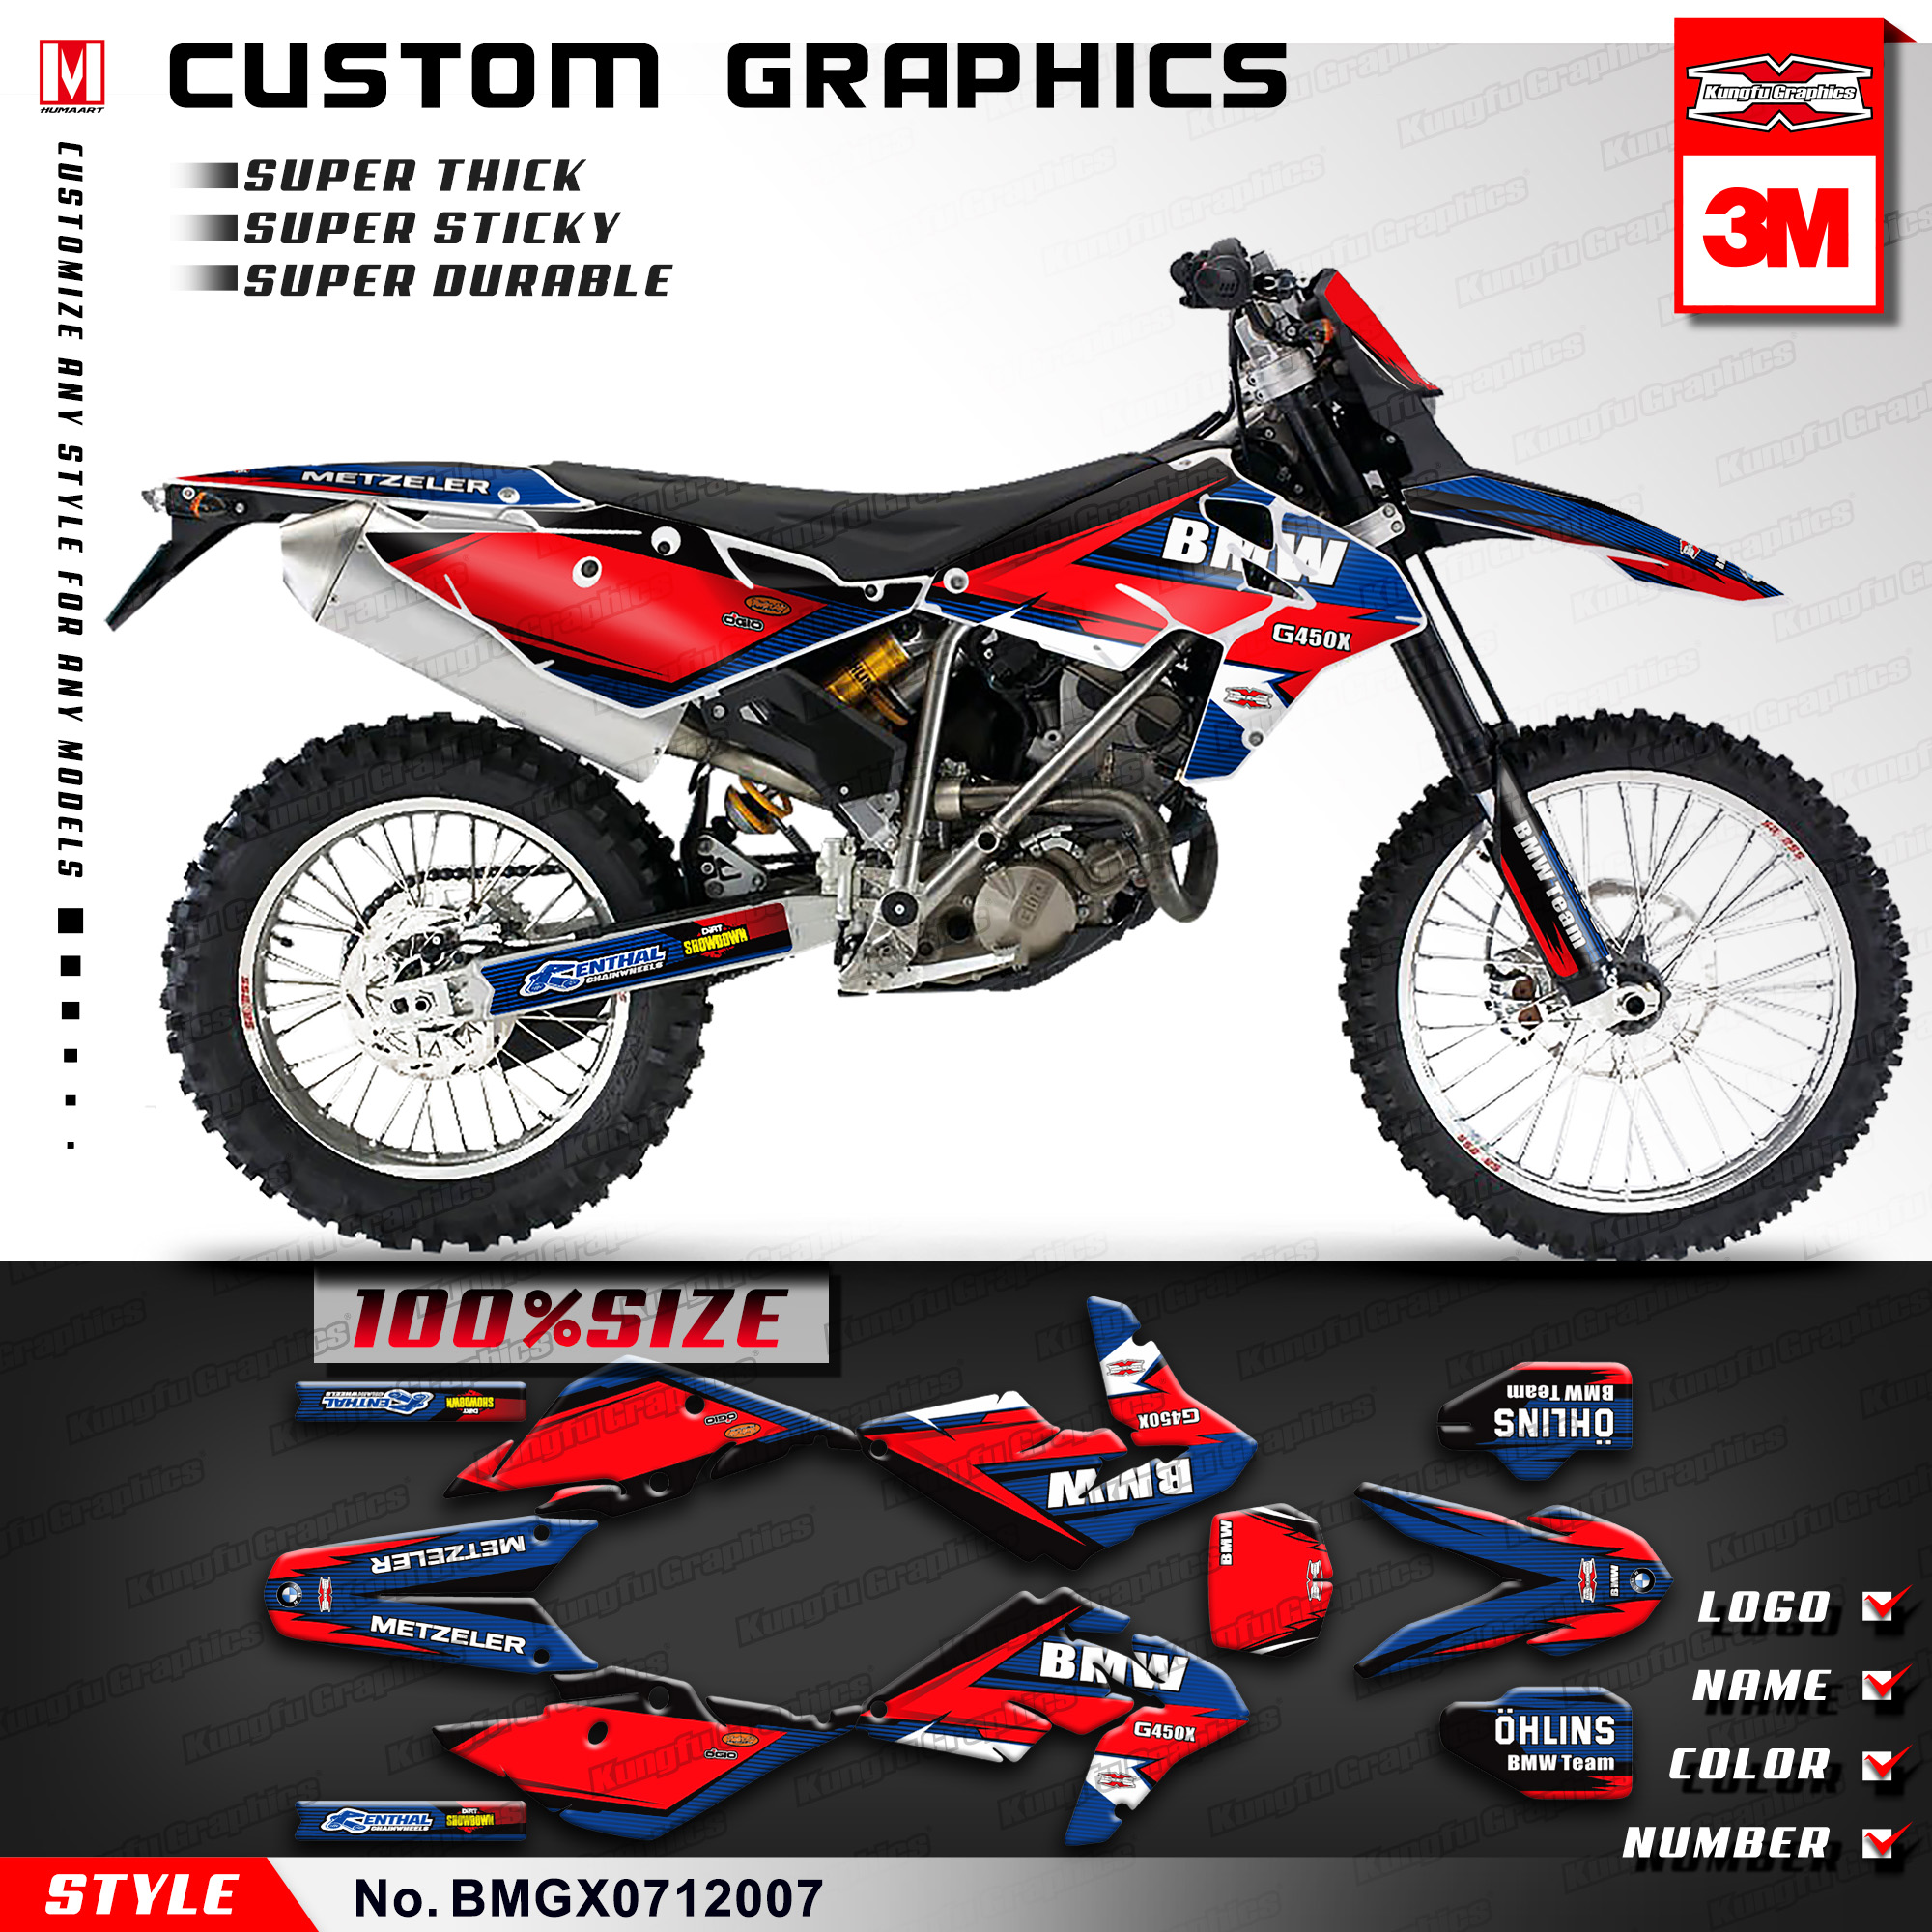 KUNGFU GRAPHICS Racing Decals Vinyl Wrap Sticker Kit for BMW